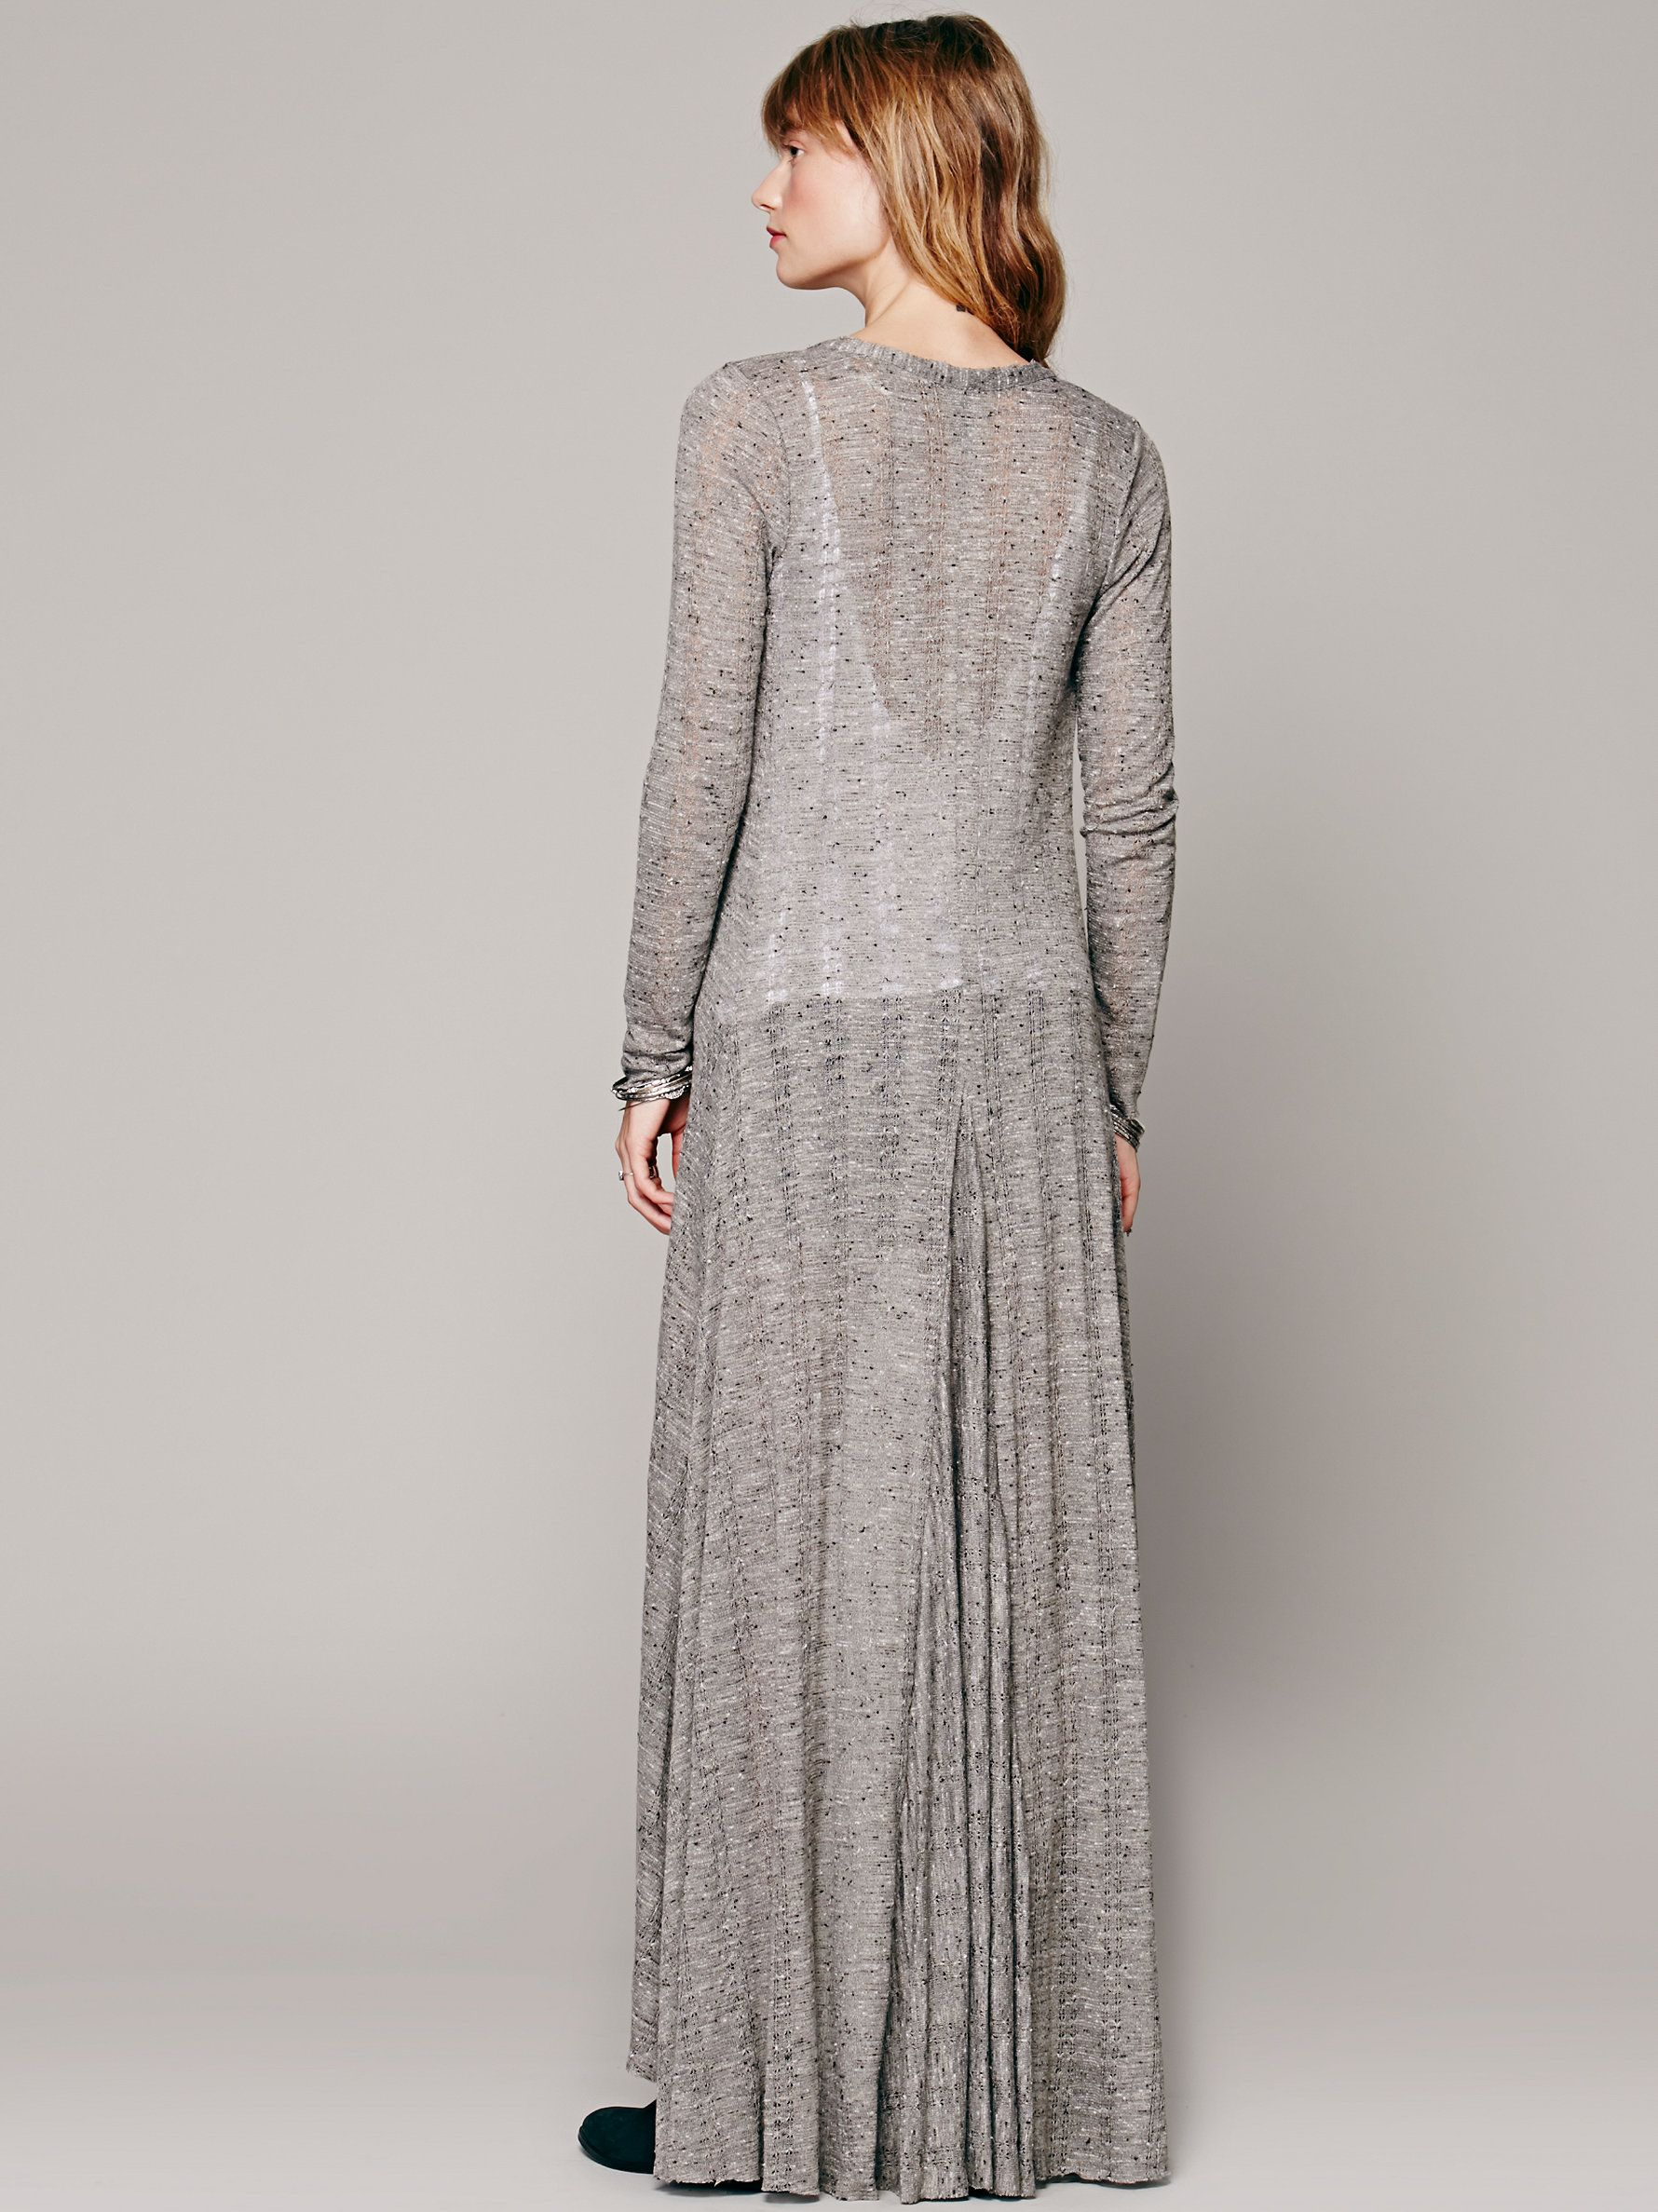 http://images1.freepeople.com/is/image/FreePeople/27843903_004_b?$zoom-superxl$